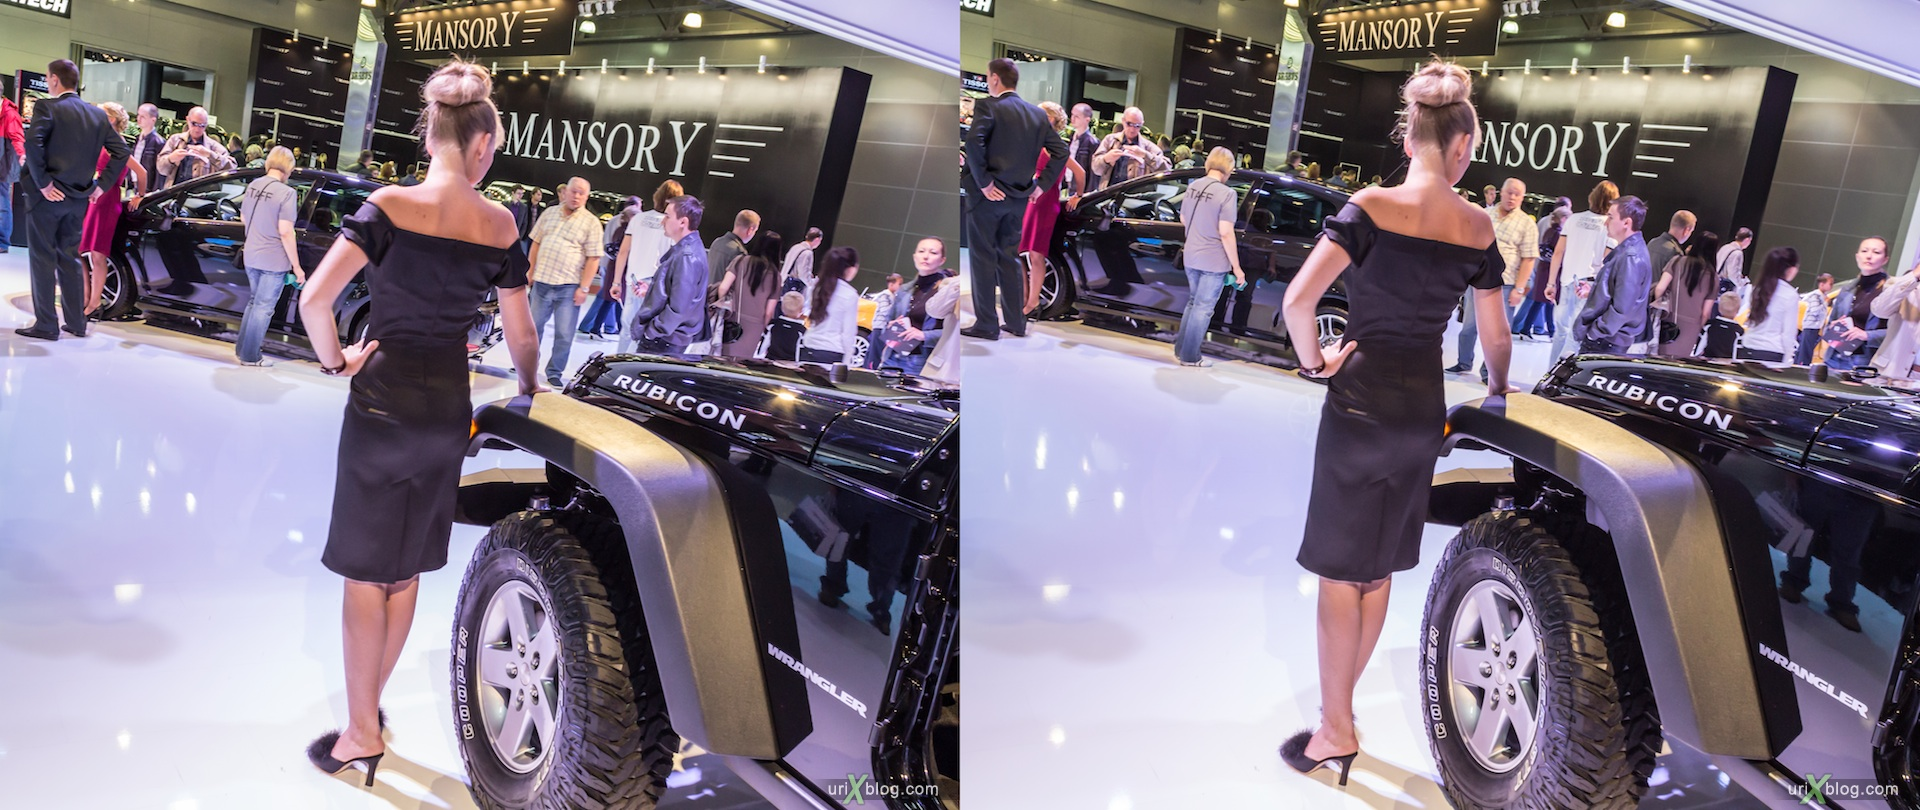 2012, Wrangler Rubicon, девушка, модель, girl, model, Moscow International Automobile Salon, auto show, 3D, stereo pair, cross-eyed, crossview